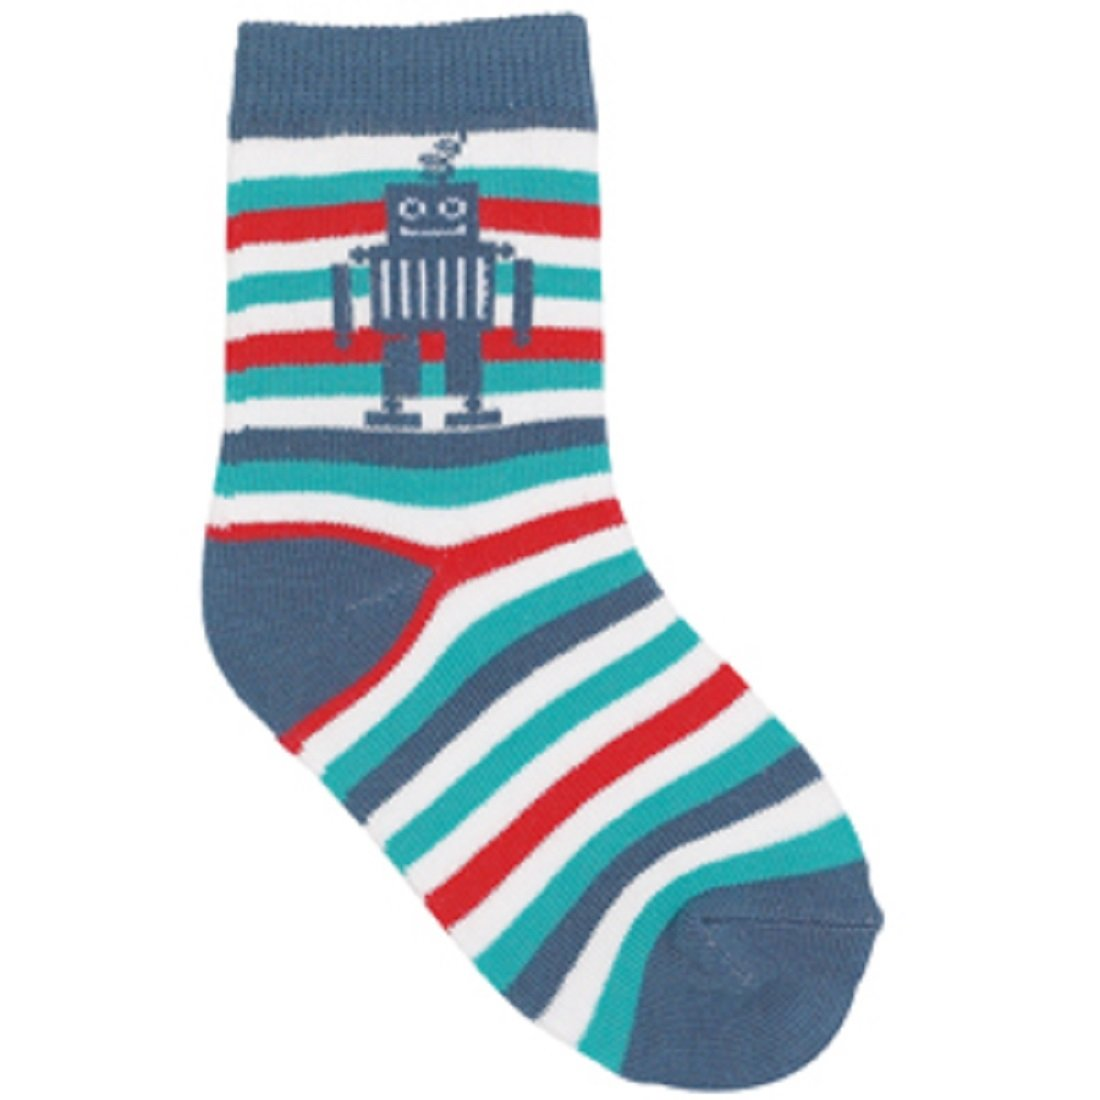 Country Kids Toddler 1 prs BLUE ROBOT STRIPES Socks 1-2 yrs